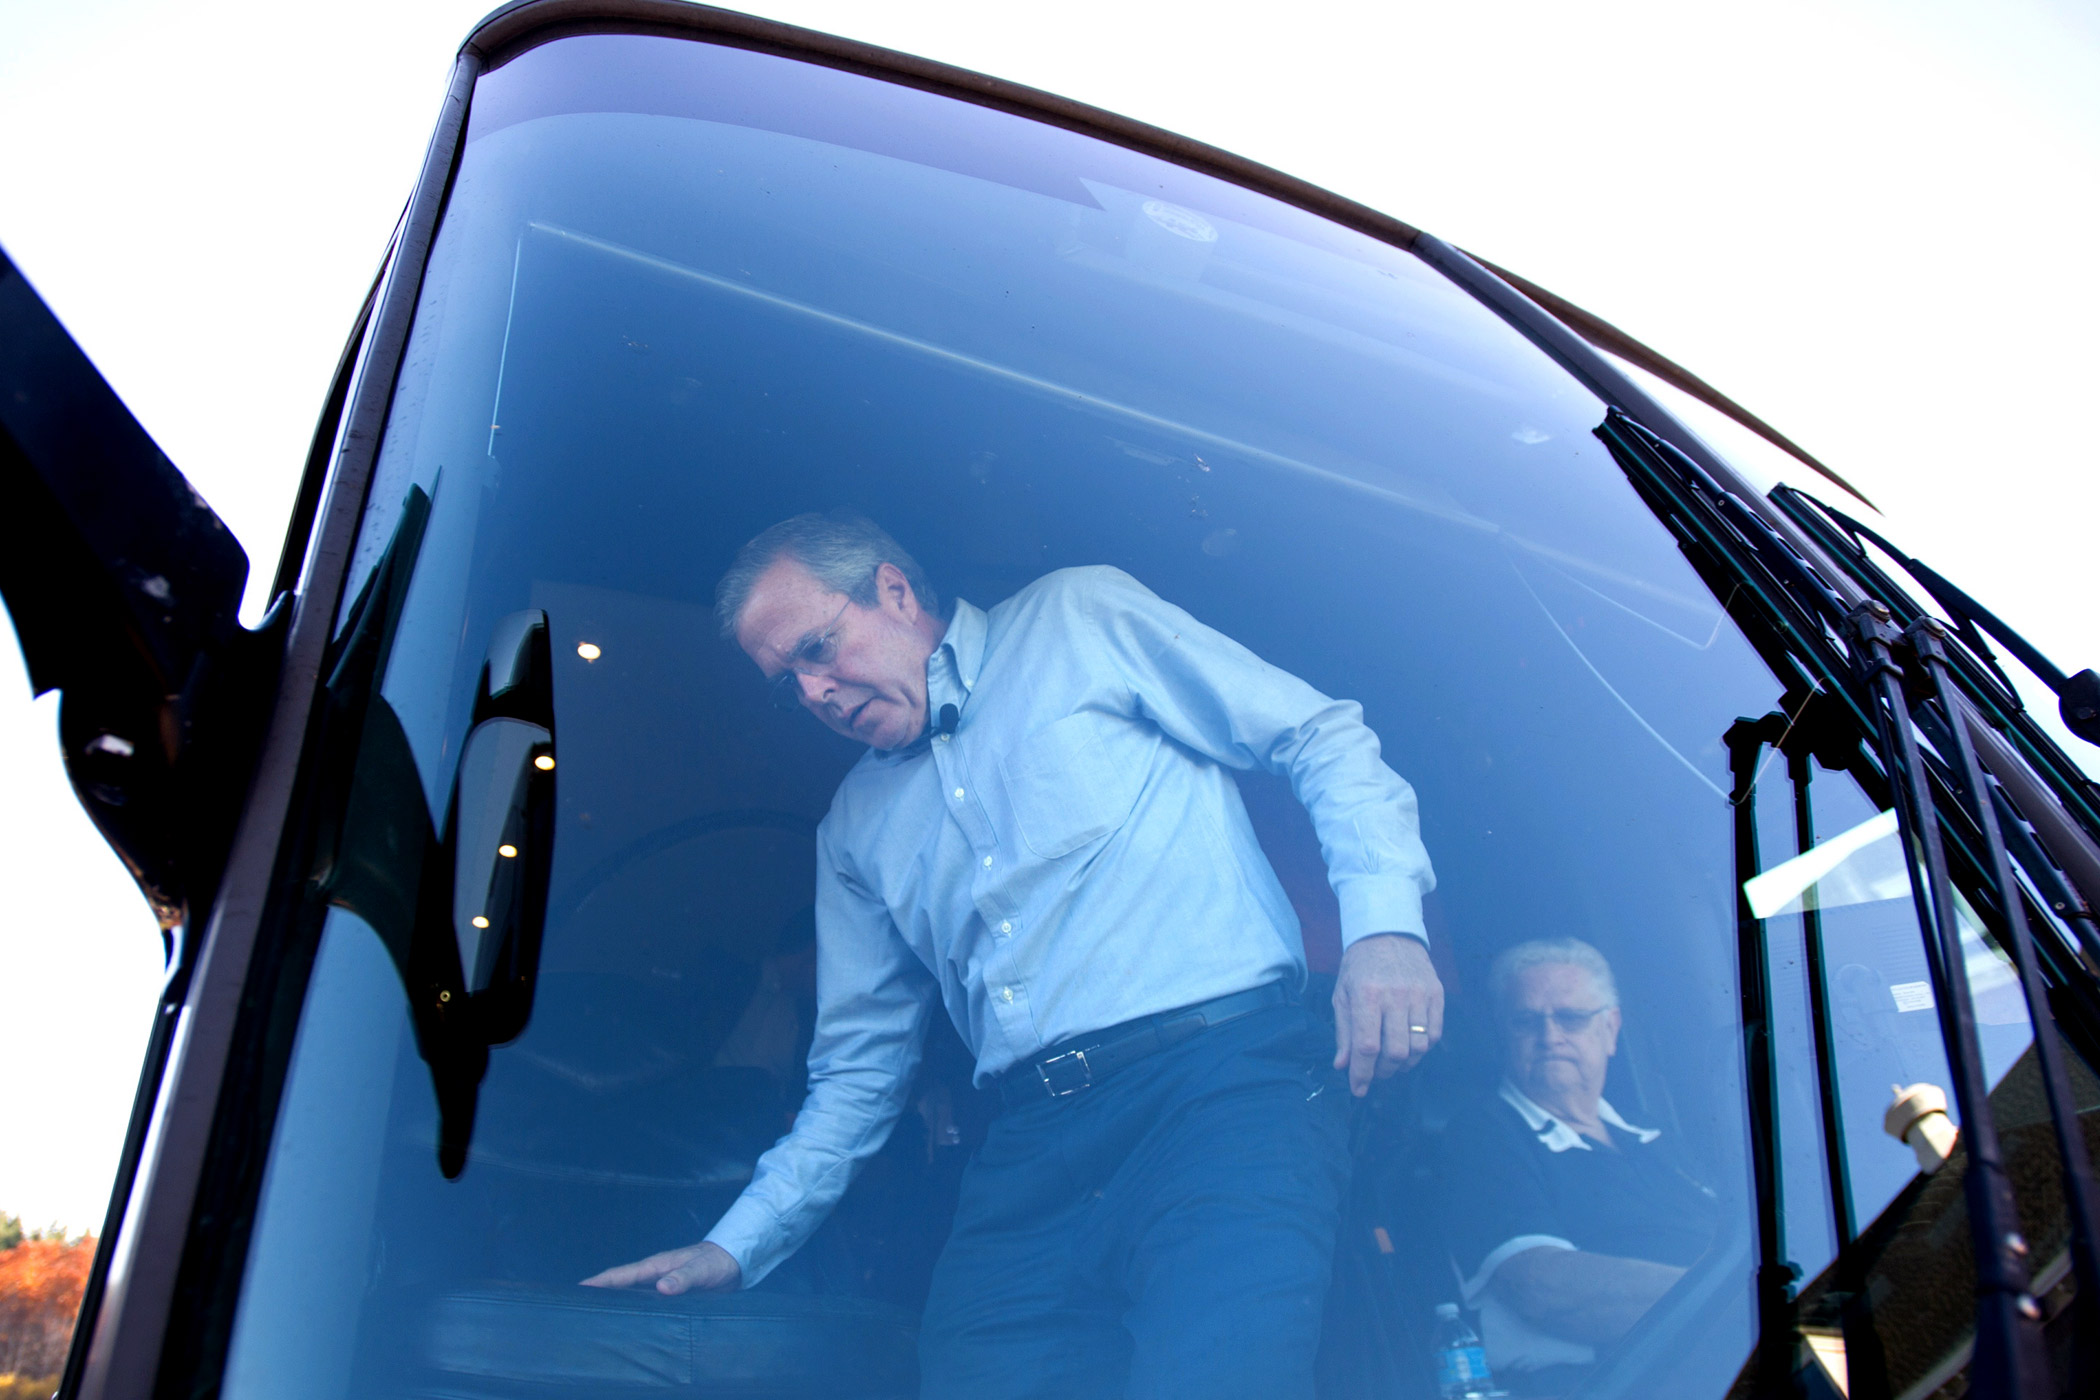 Republican presidential candidate Jeb Bush gets off his campaign bus in Goffstown, N.H. on Nov. 4, 2015.